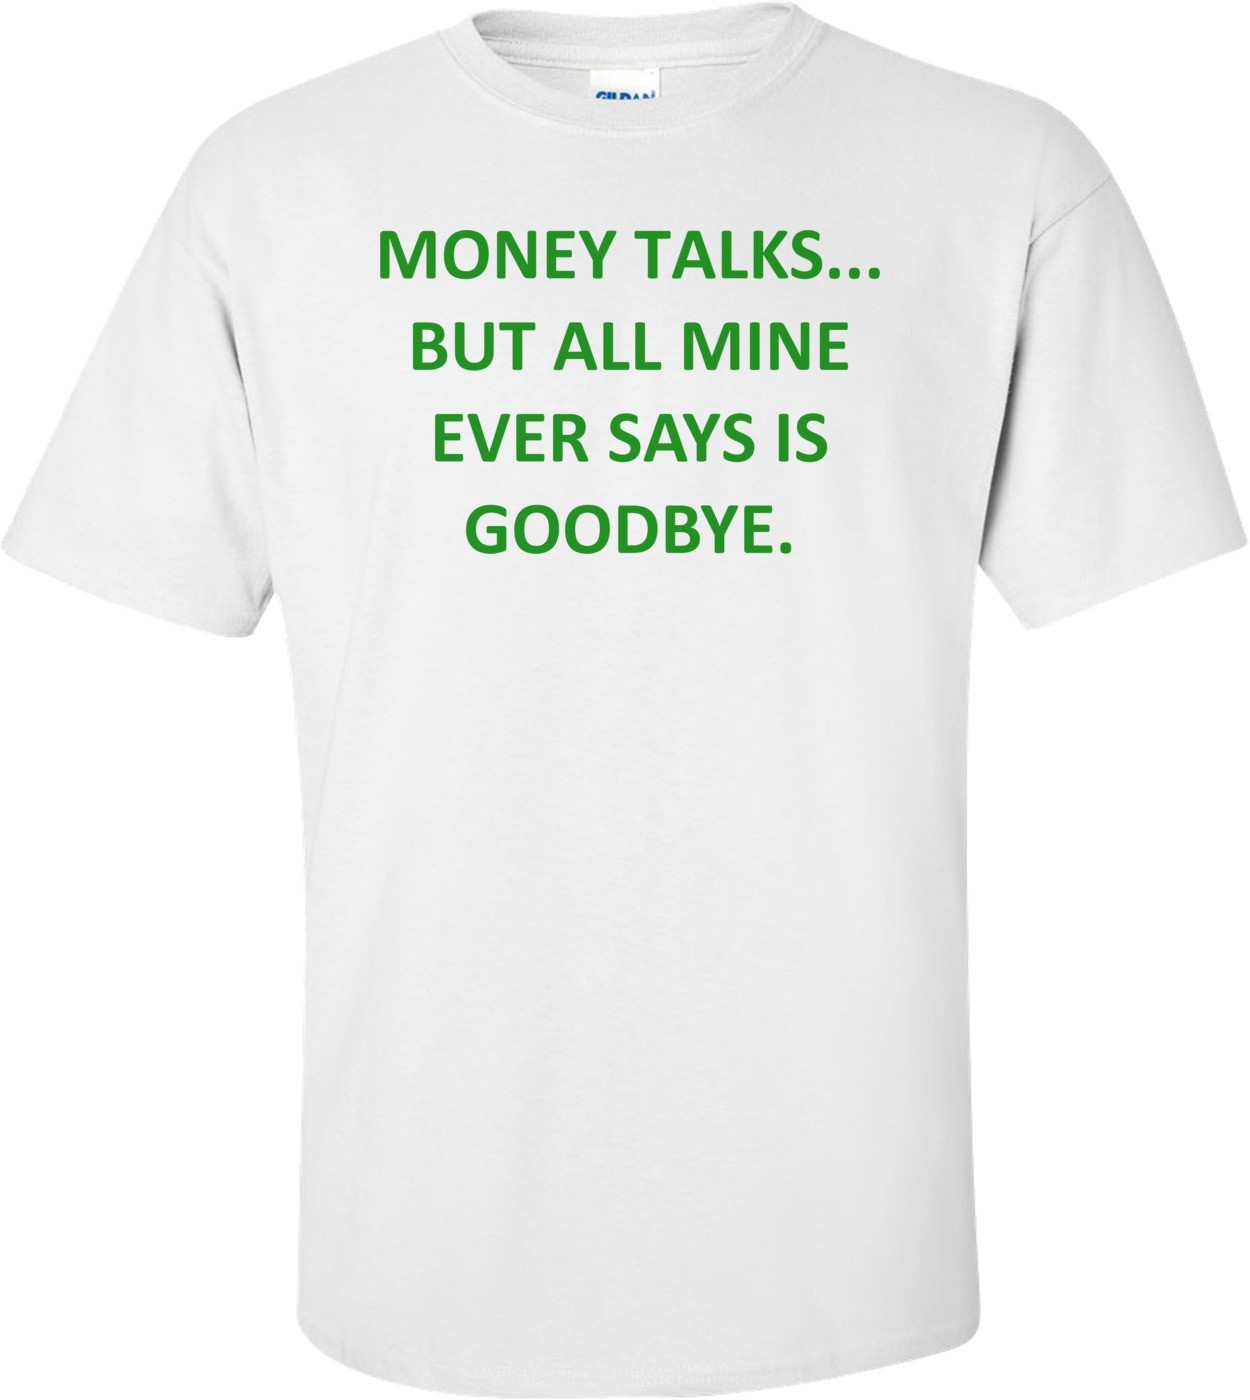 MONEY TALKS... BUT ALL MINE EVER SAYS IS GOODBYE. Shirt